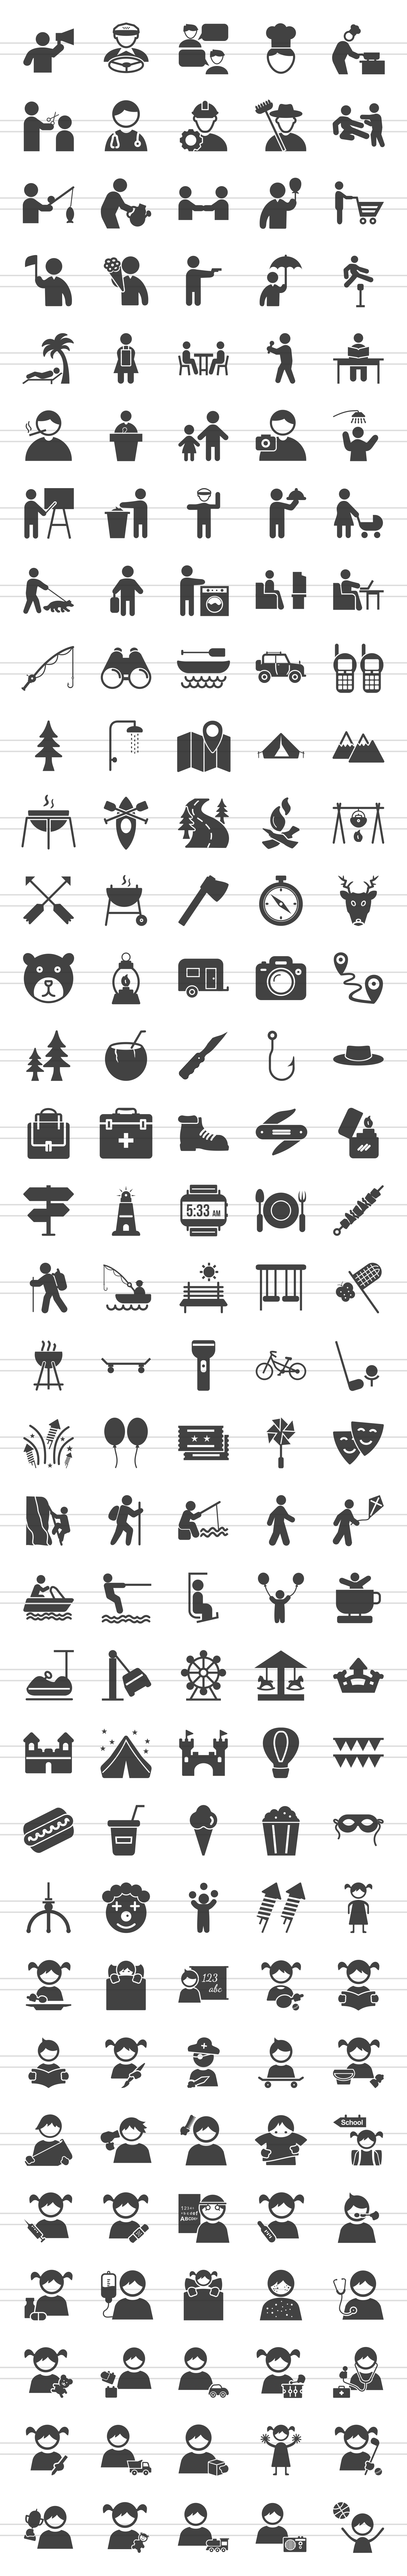 166 Activities Glyph Icons example image 2